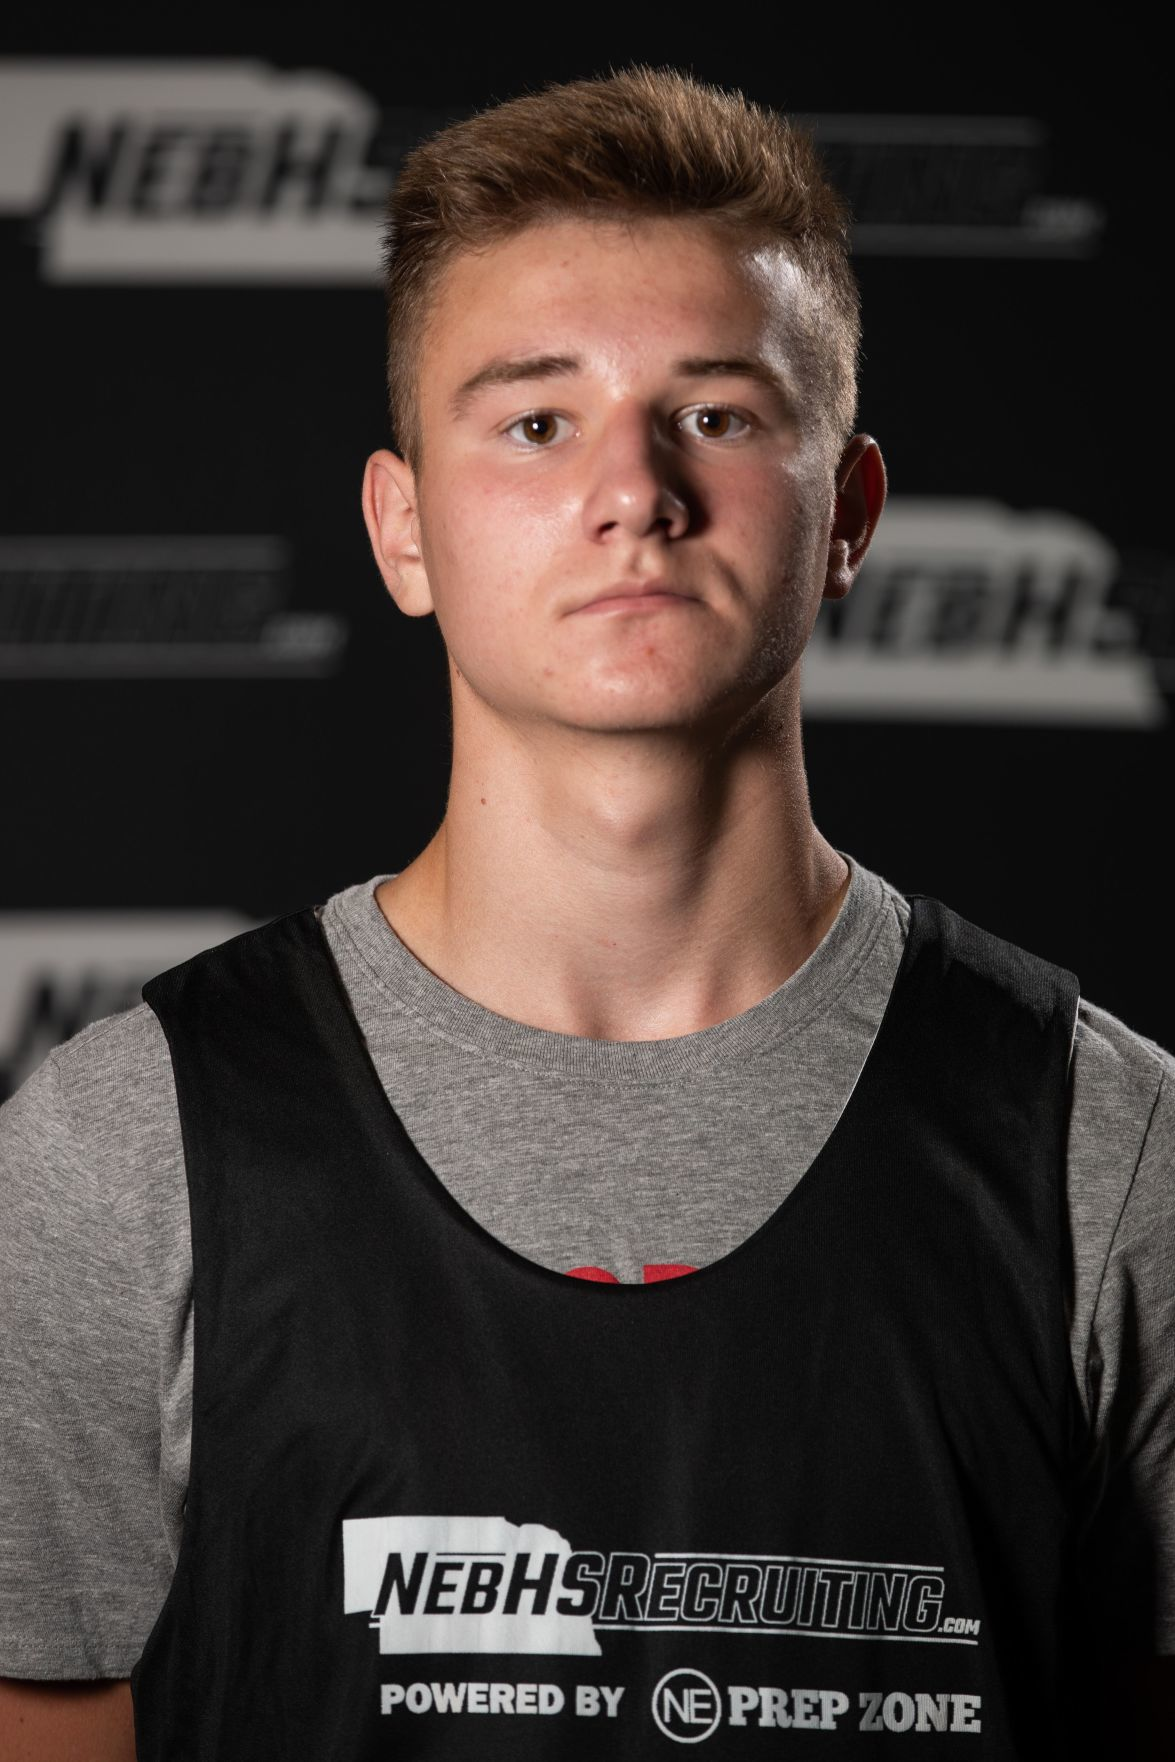 2018 NebHSRecruiting Top 50 Basketball Showcase testing results